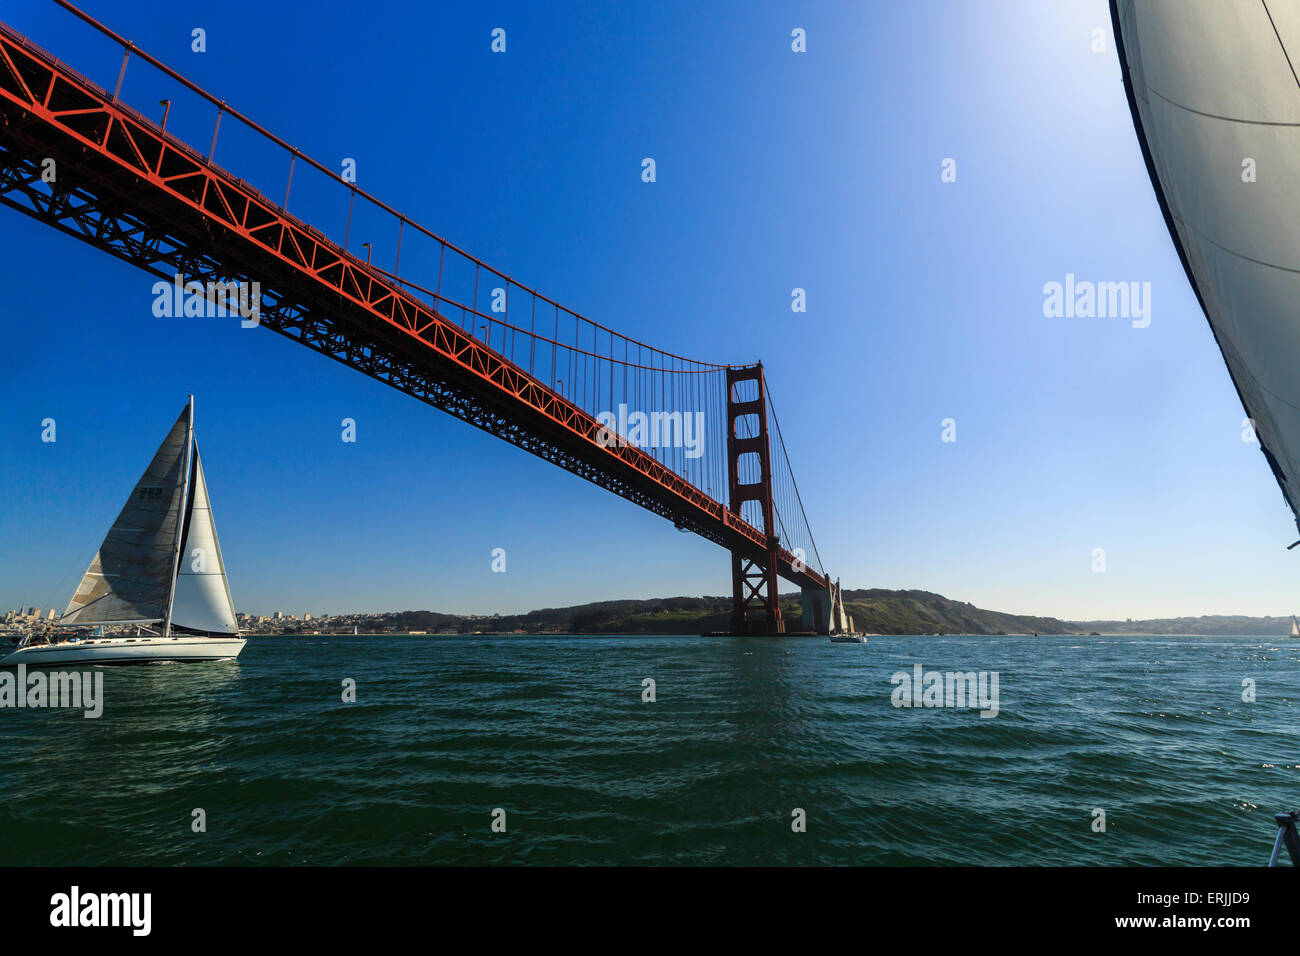 Sailboat passing under the bright red superstructure of the Golden Gate Bridge on a sunny day - Stock Image